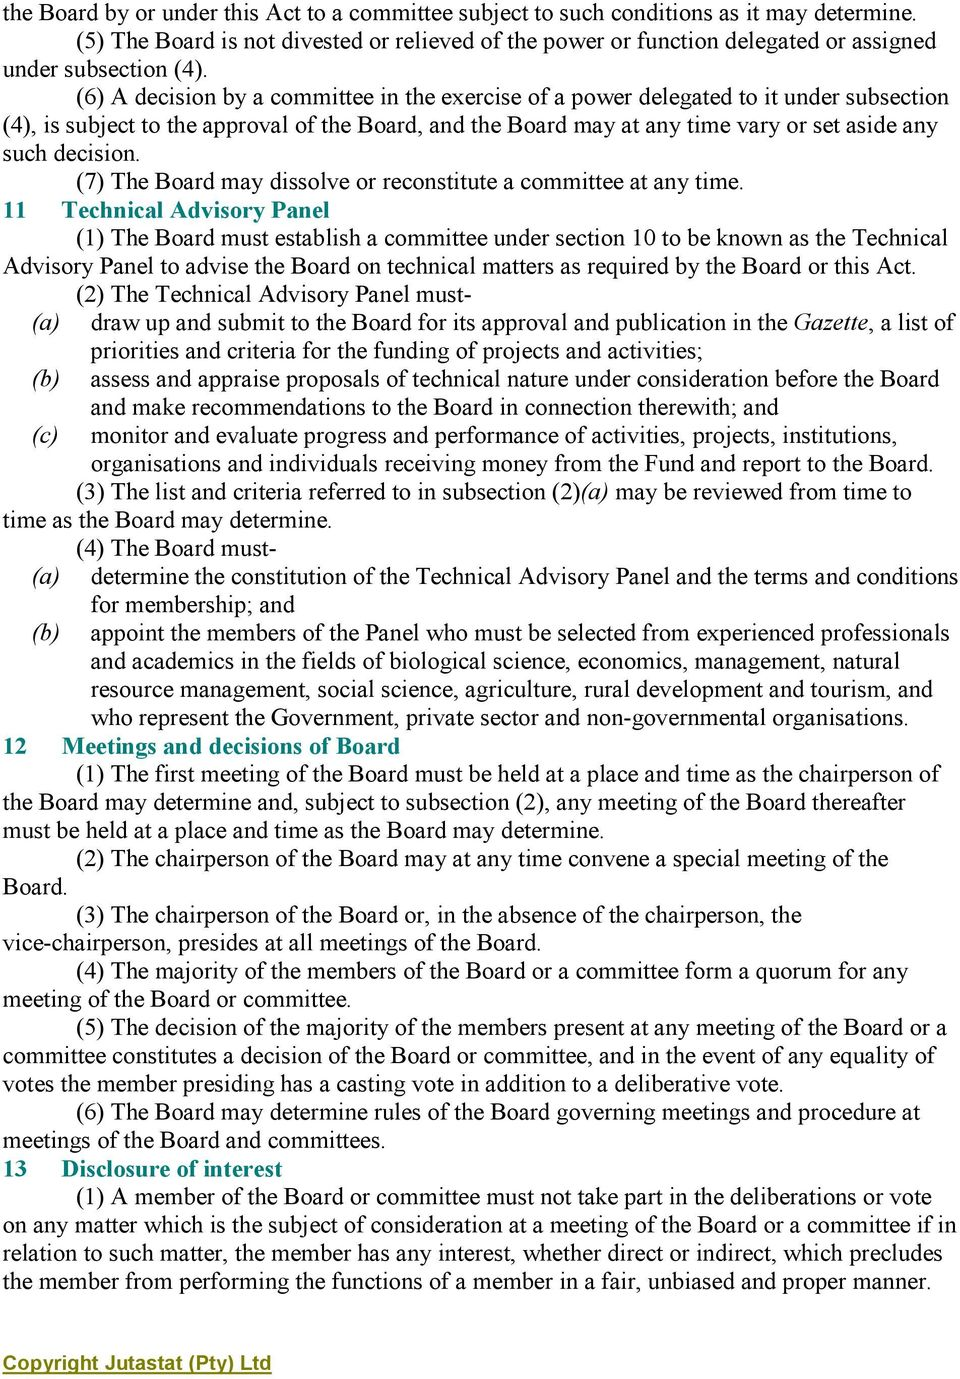 (6) A decision by a committee in the exercise of a power delegated to it under subsection (4), is subject to the approval of the Board, and the Board may at any time vary or set aside any such